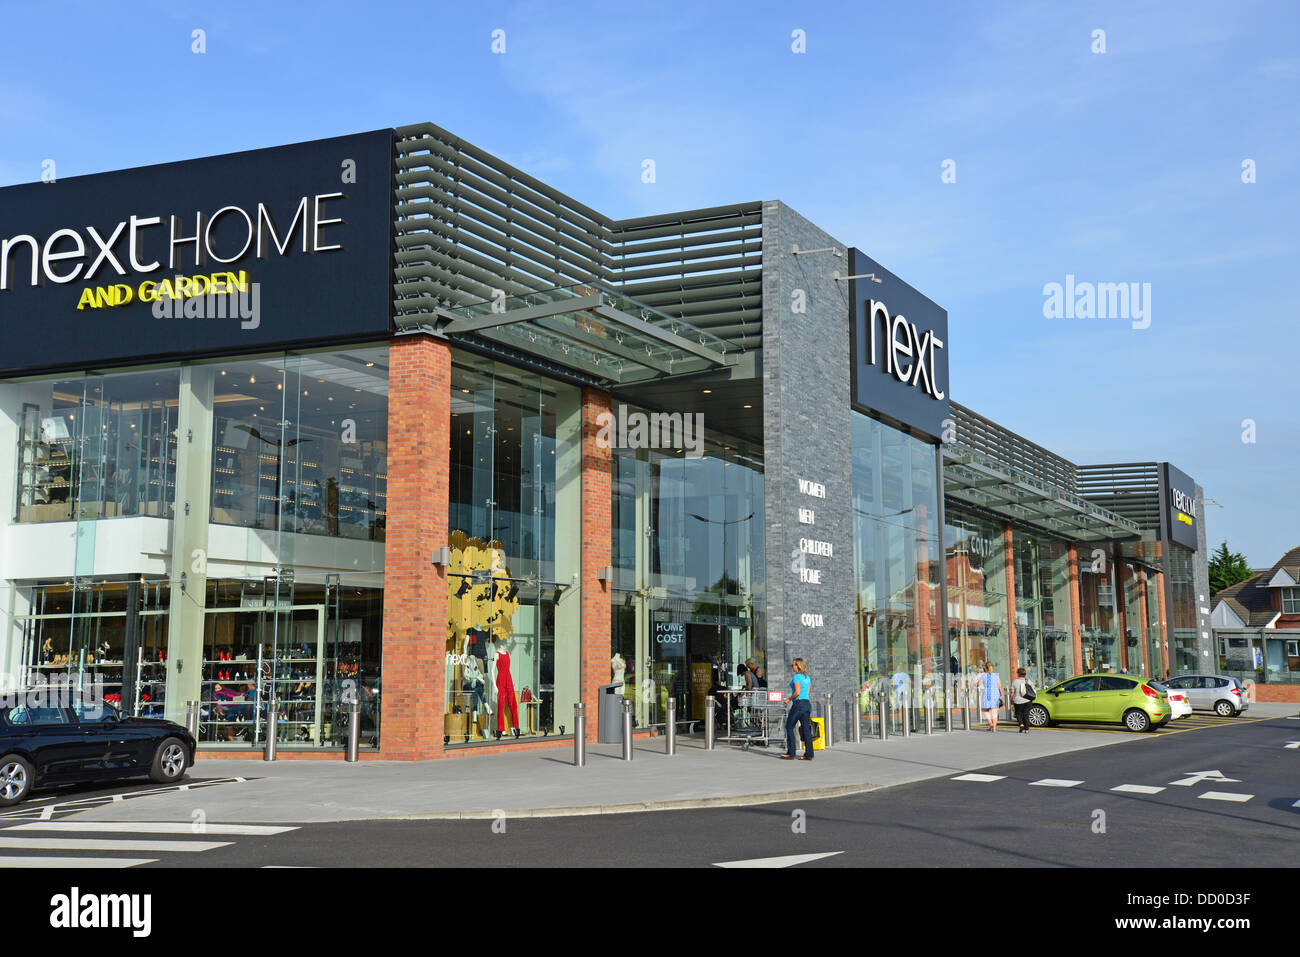 Next Home And Garden Store, London Road, Camberley, Surrey, England, United  Kingdom